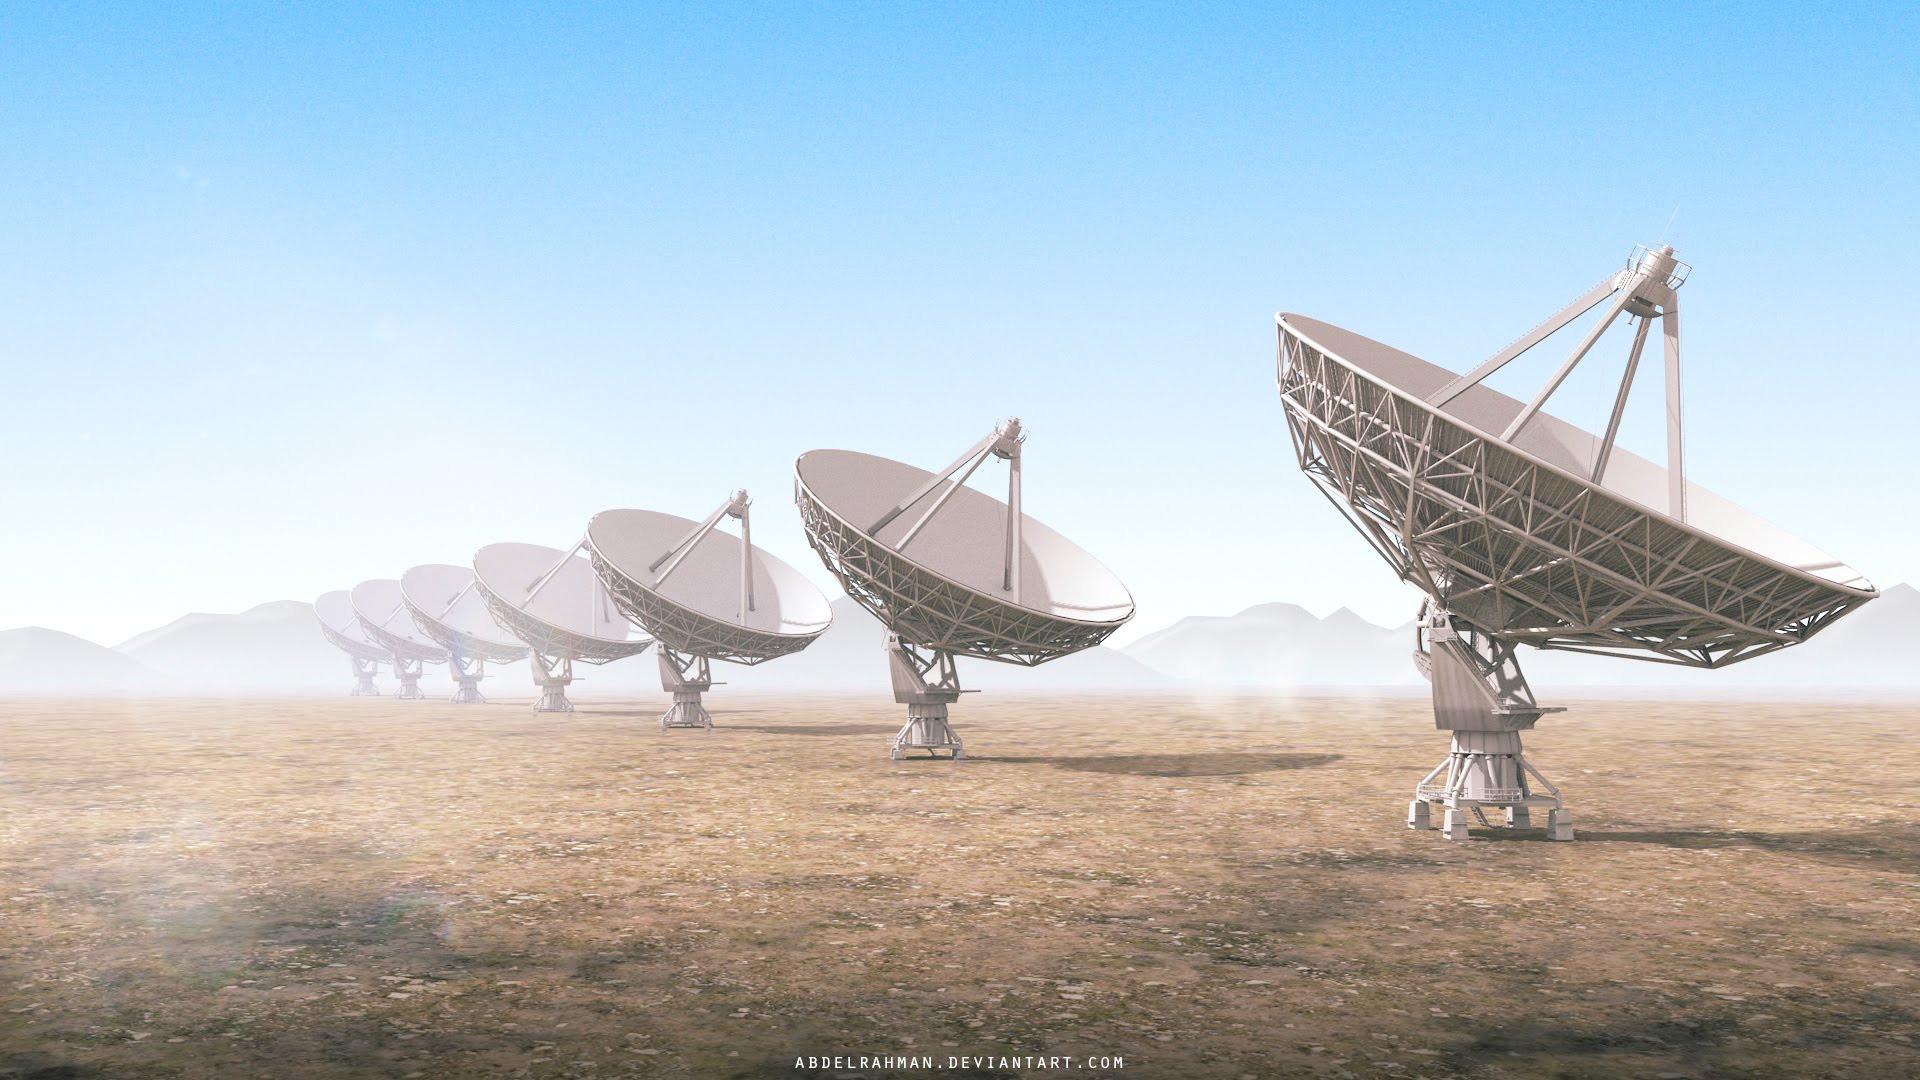 the seti program and the existence of extraterrestrials Seti radio signal february 2003 link in 2003, astronomers with the search for extraterrestrial intelligence (seti) used a massive telescope to examine sections of the sky where they had previously found unexplained radio signals.